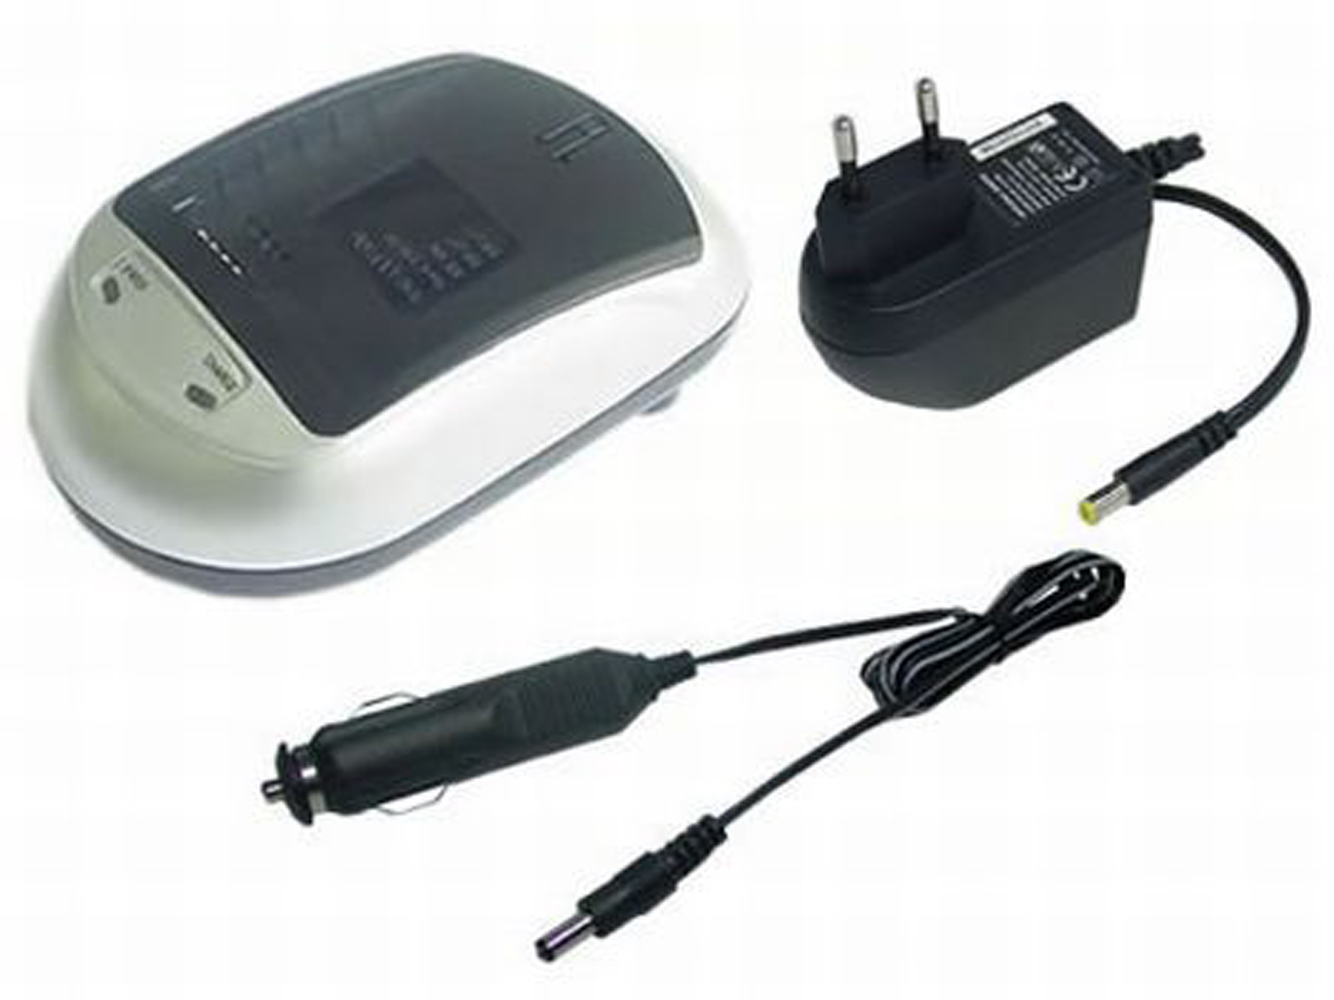 Battery Charger for CANON BP-406, BP-407, BP-412, BP-422